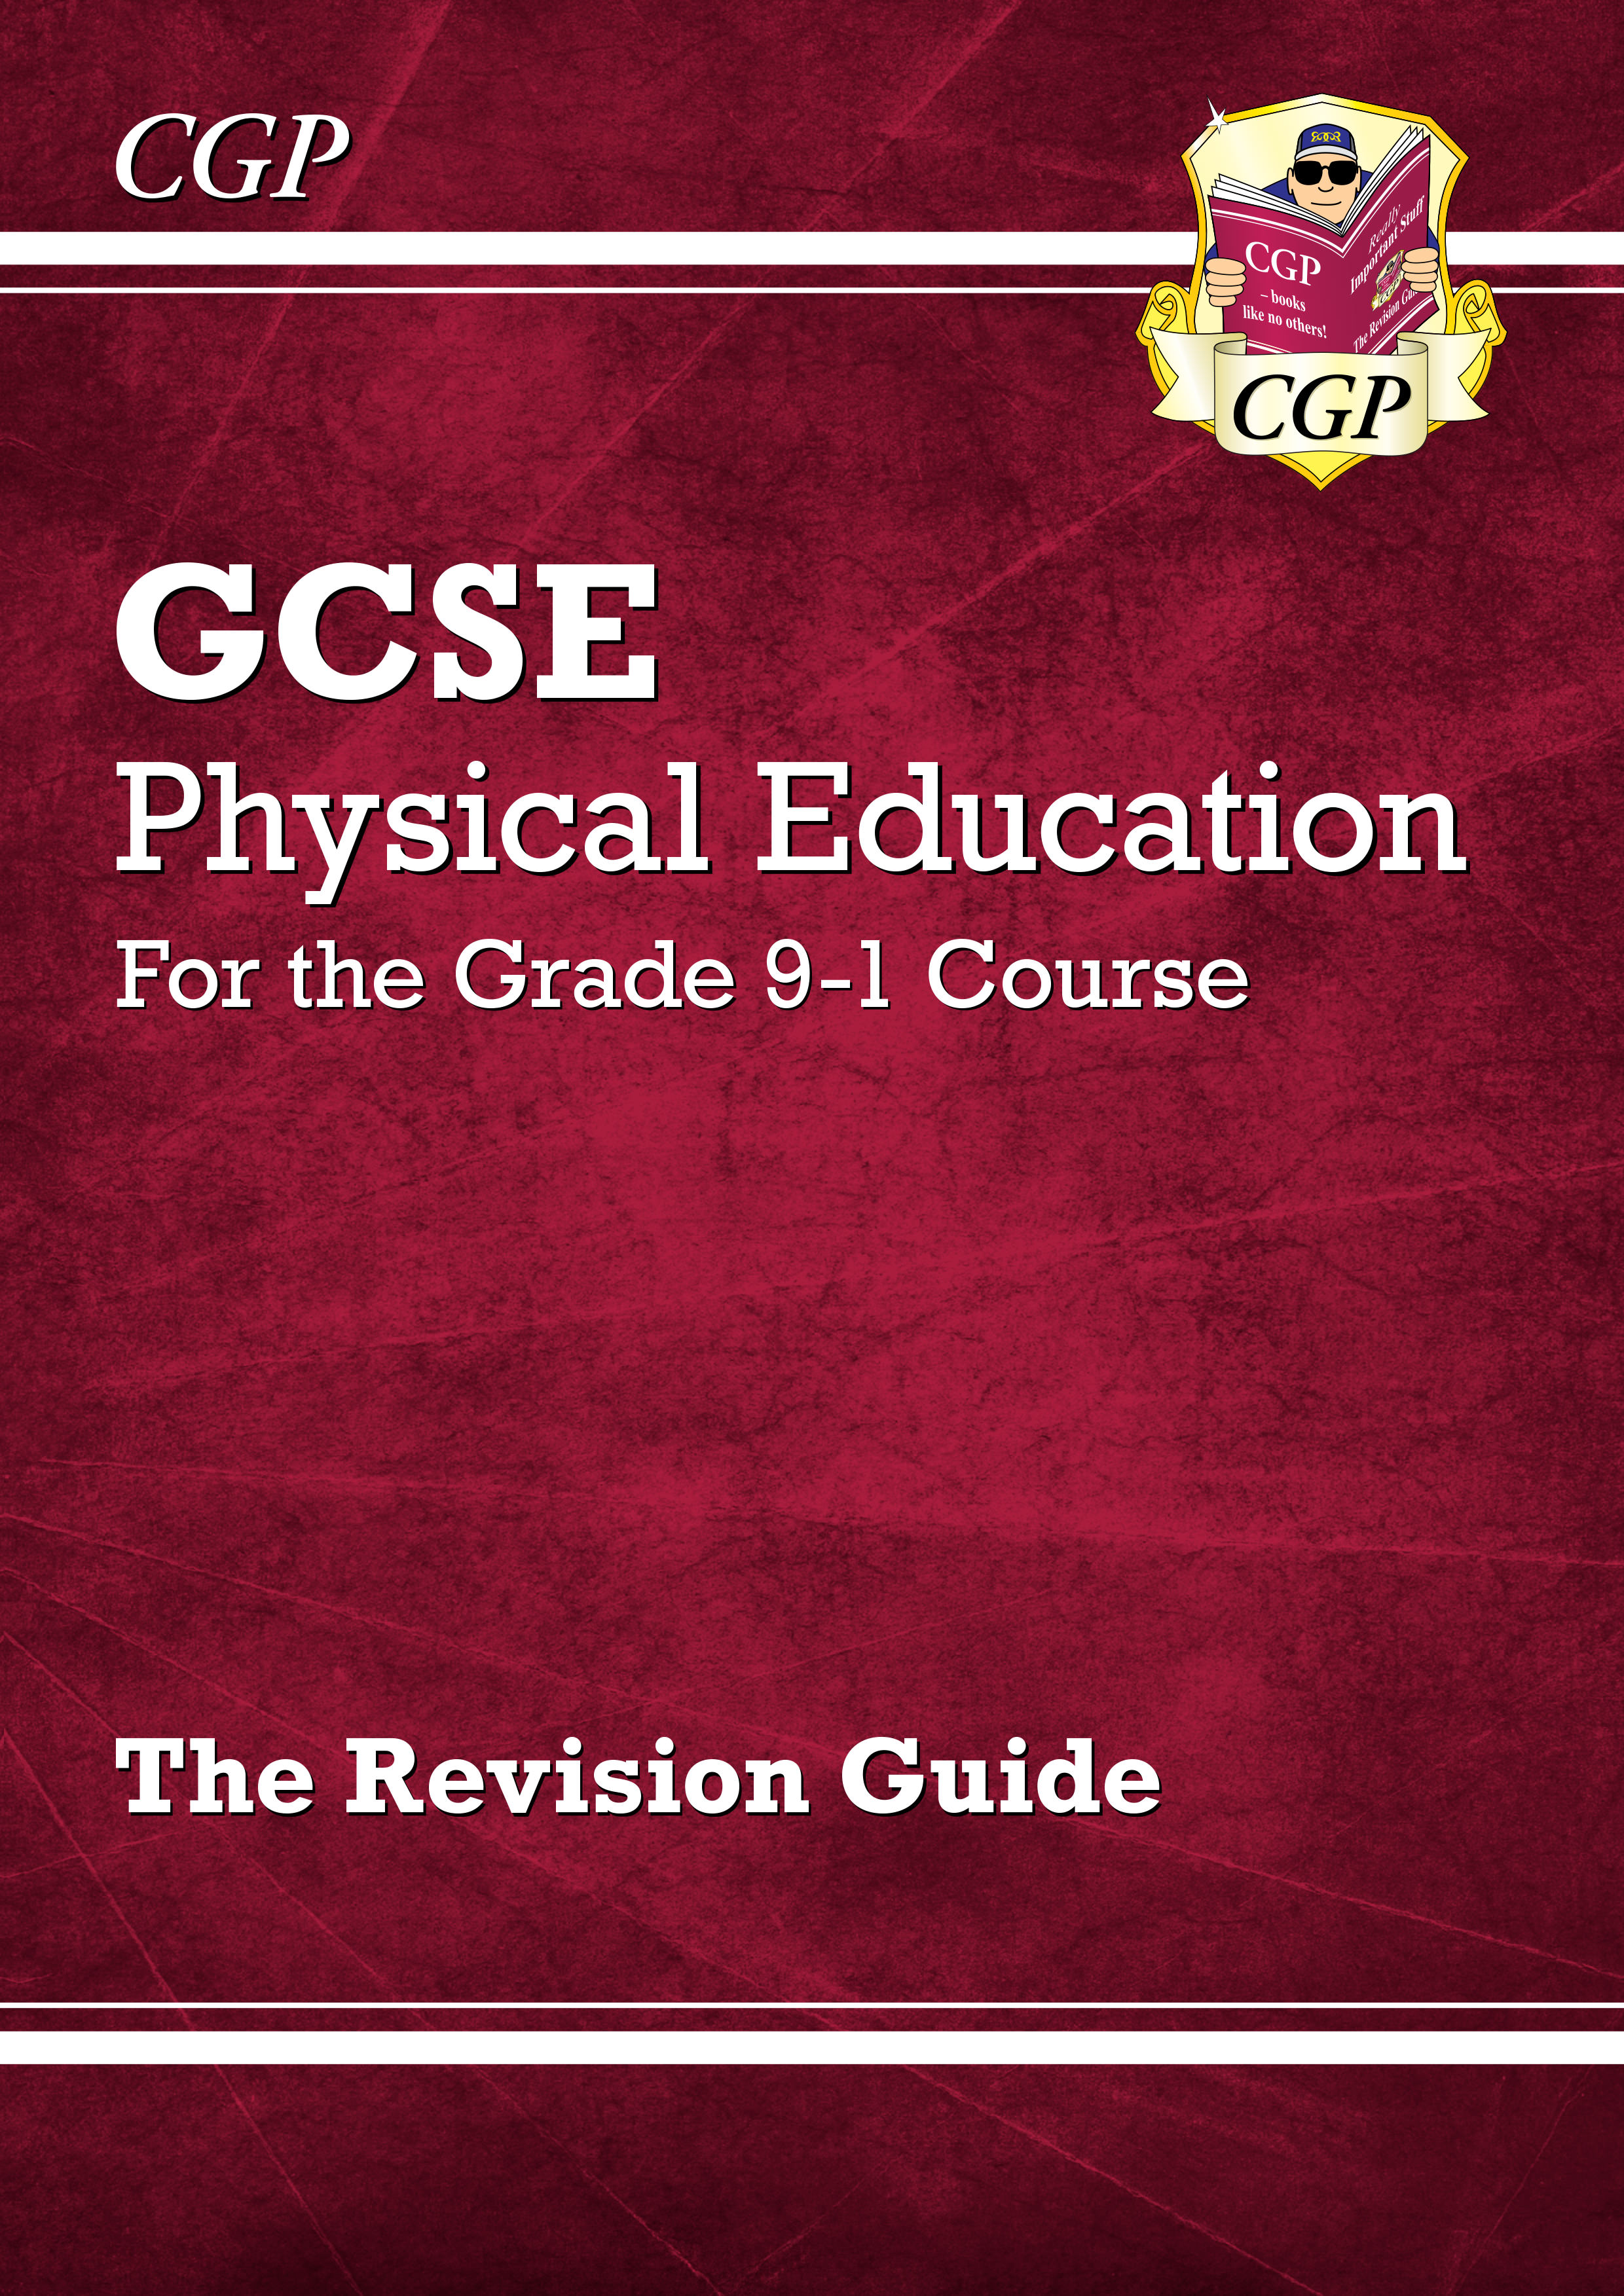 JHR43DK - New GCSE Physical Education Revision Guide - for the Grade 9-1 Course